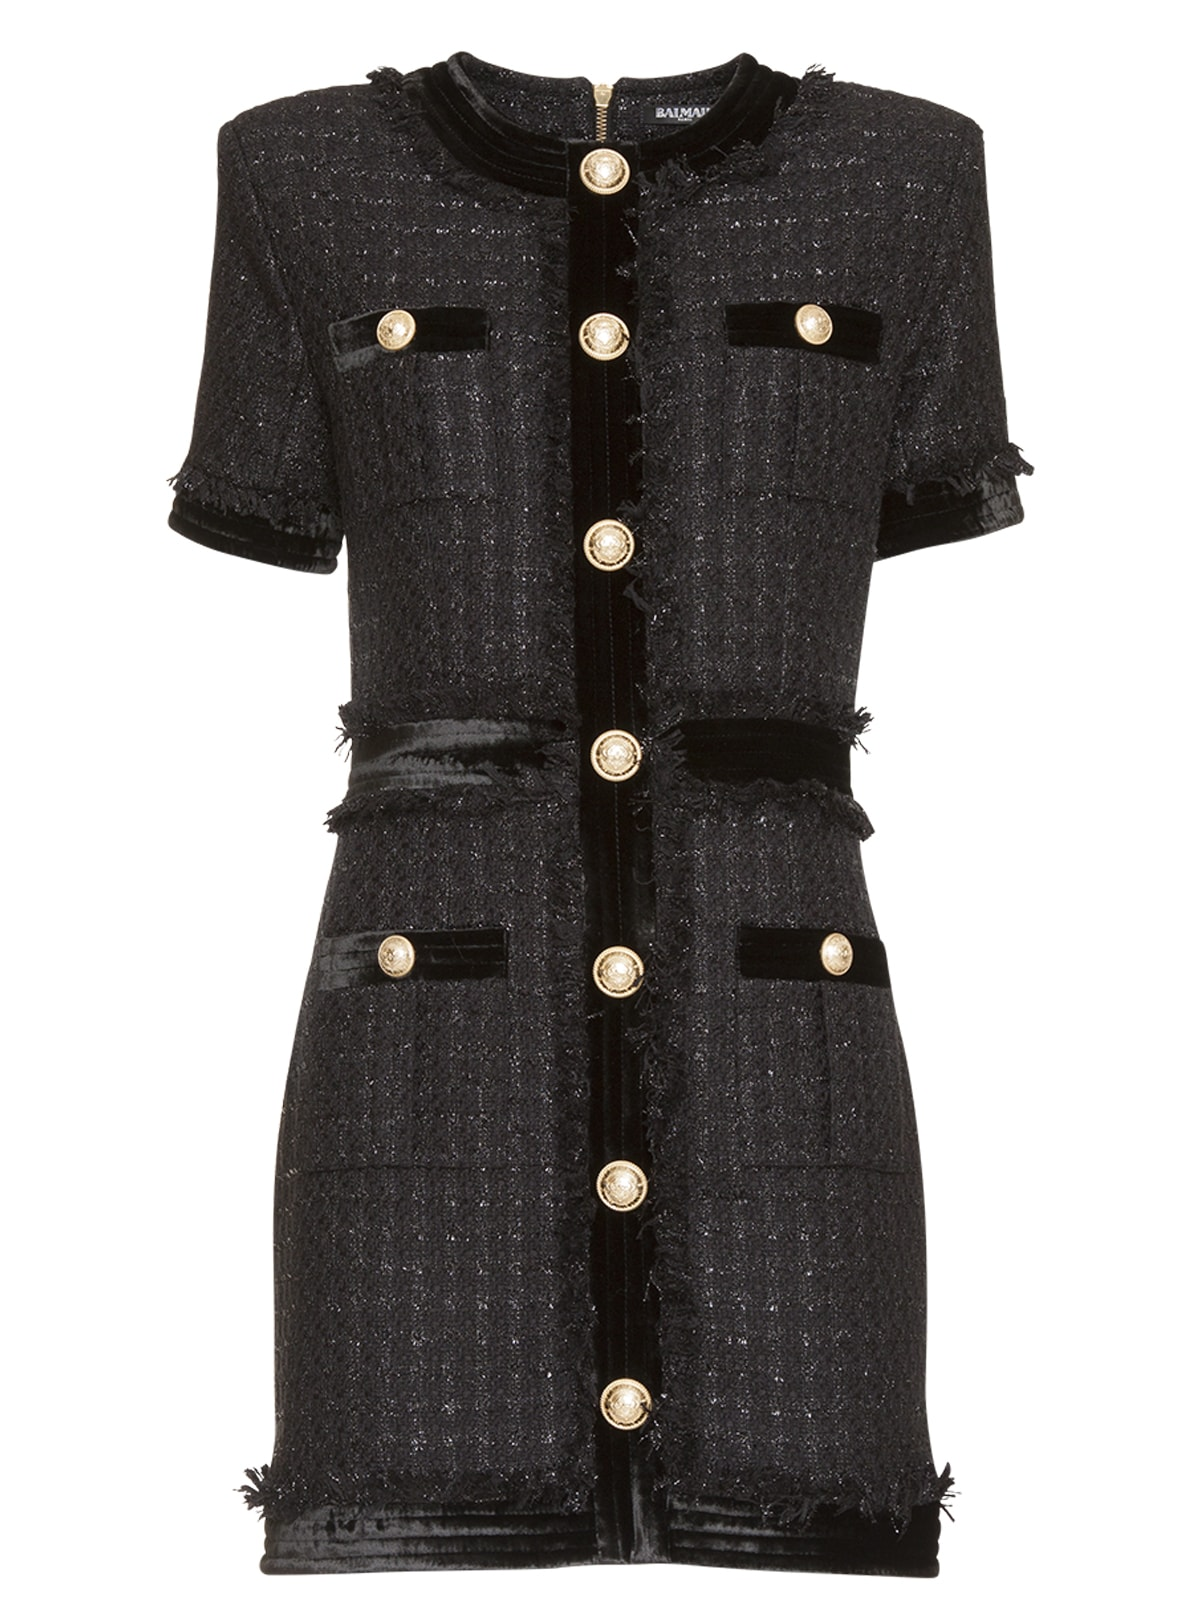 Balmain Short Dress In Black Tweed In Black